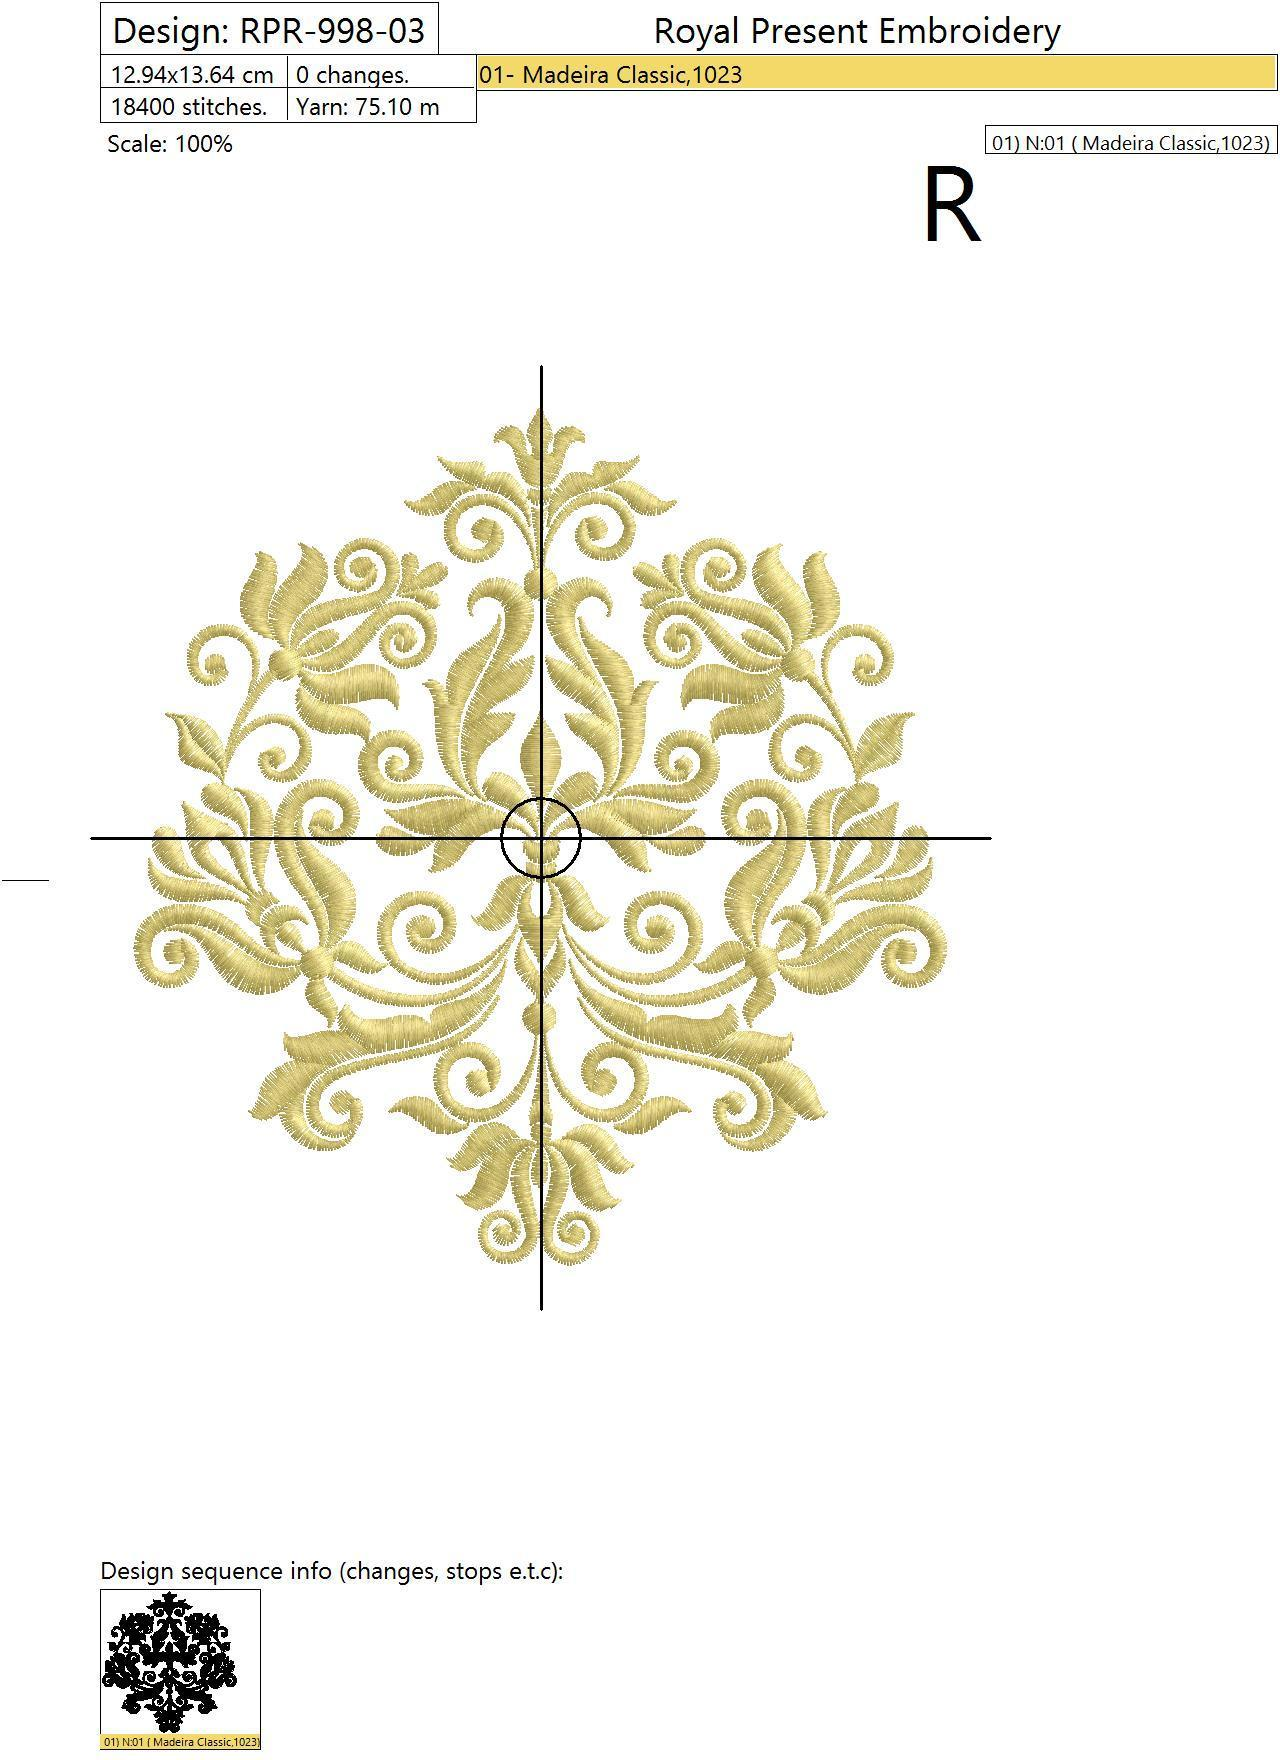 Machine Embroidery Design Vintage style Floral element - 3 sizes